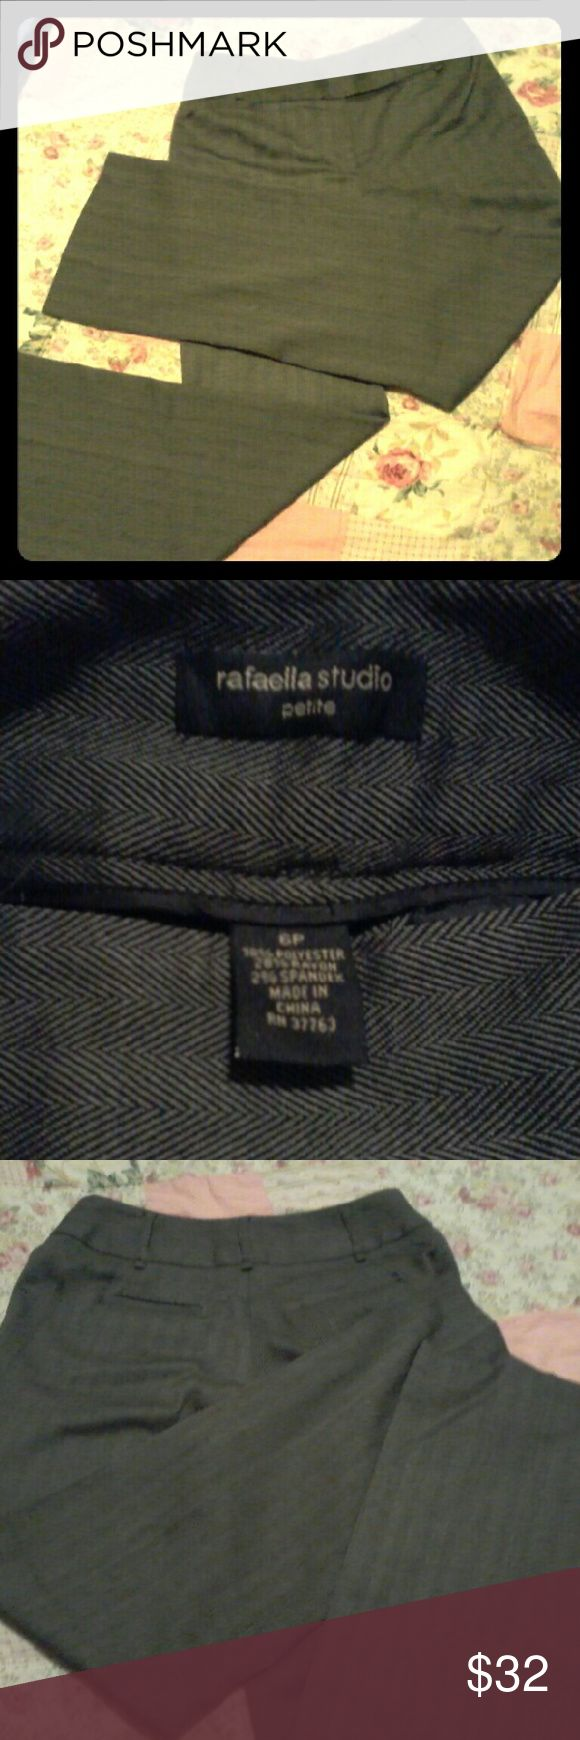 Rafaella studio's petite 6P trousers Rafaella, 6 petite, gray pinstripe, trousers, straight leg, perfect condition, no flaws Rafaella Pants Trousers